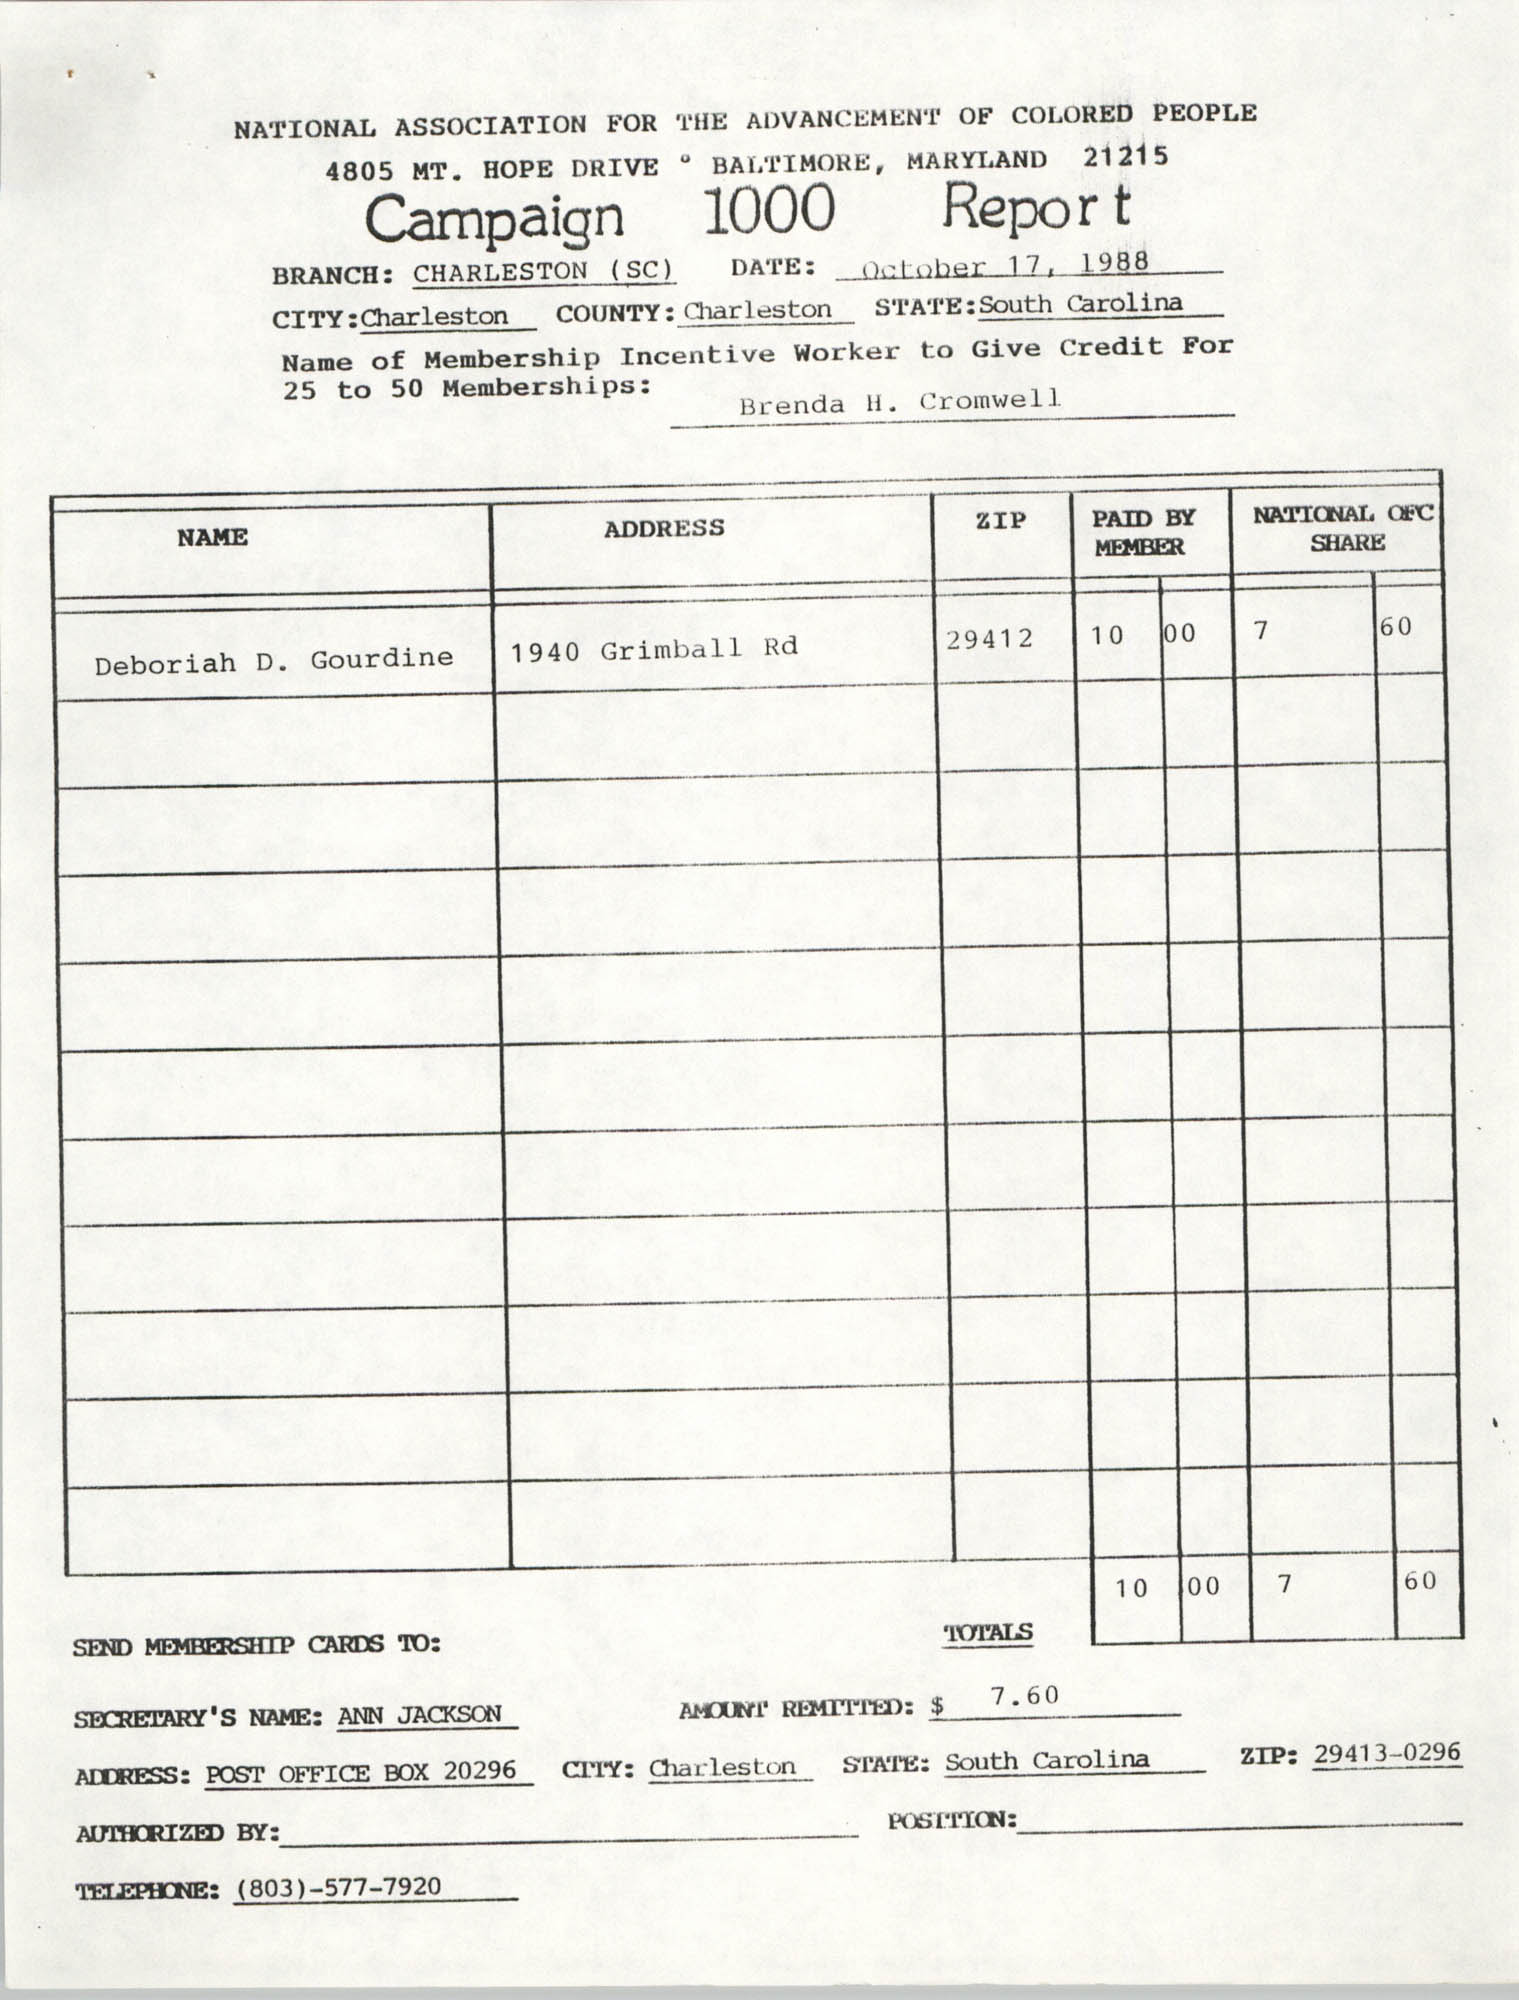 Campaign 1000 Report, Brenda H. Cromwell, Charleston Branch of the NAACP, October 17, 1988